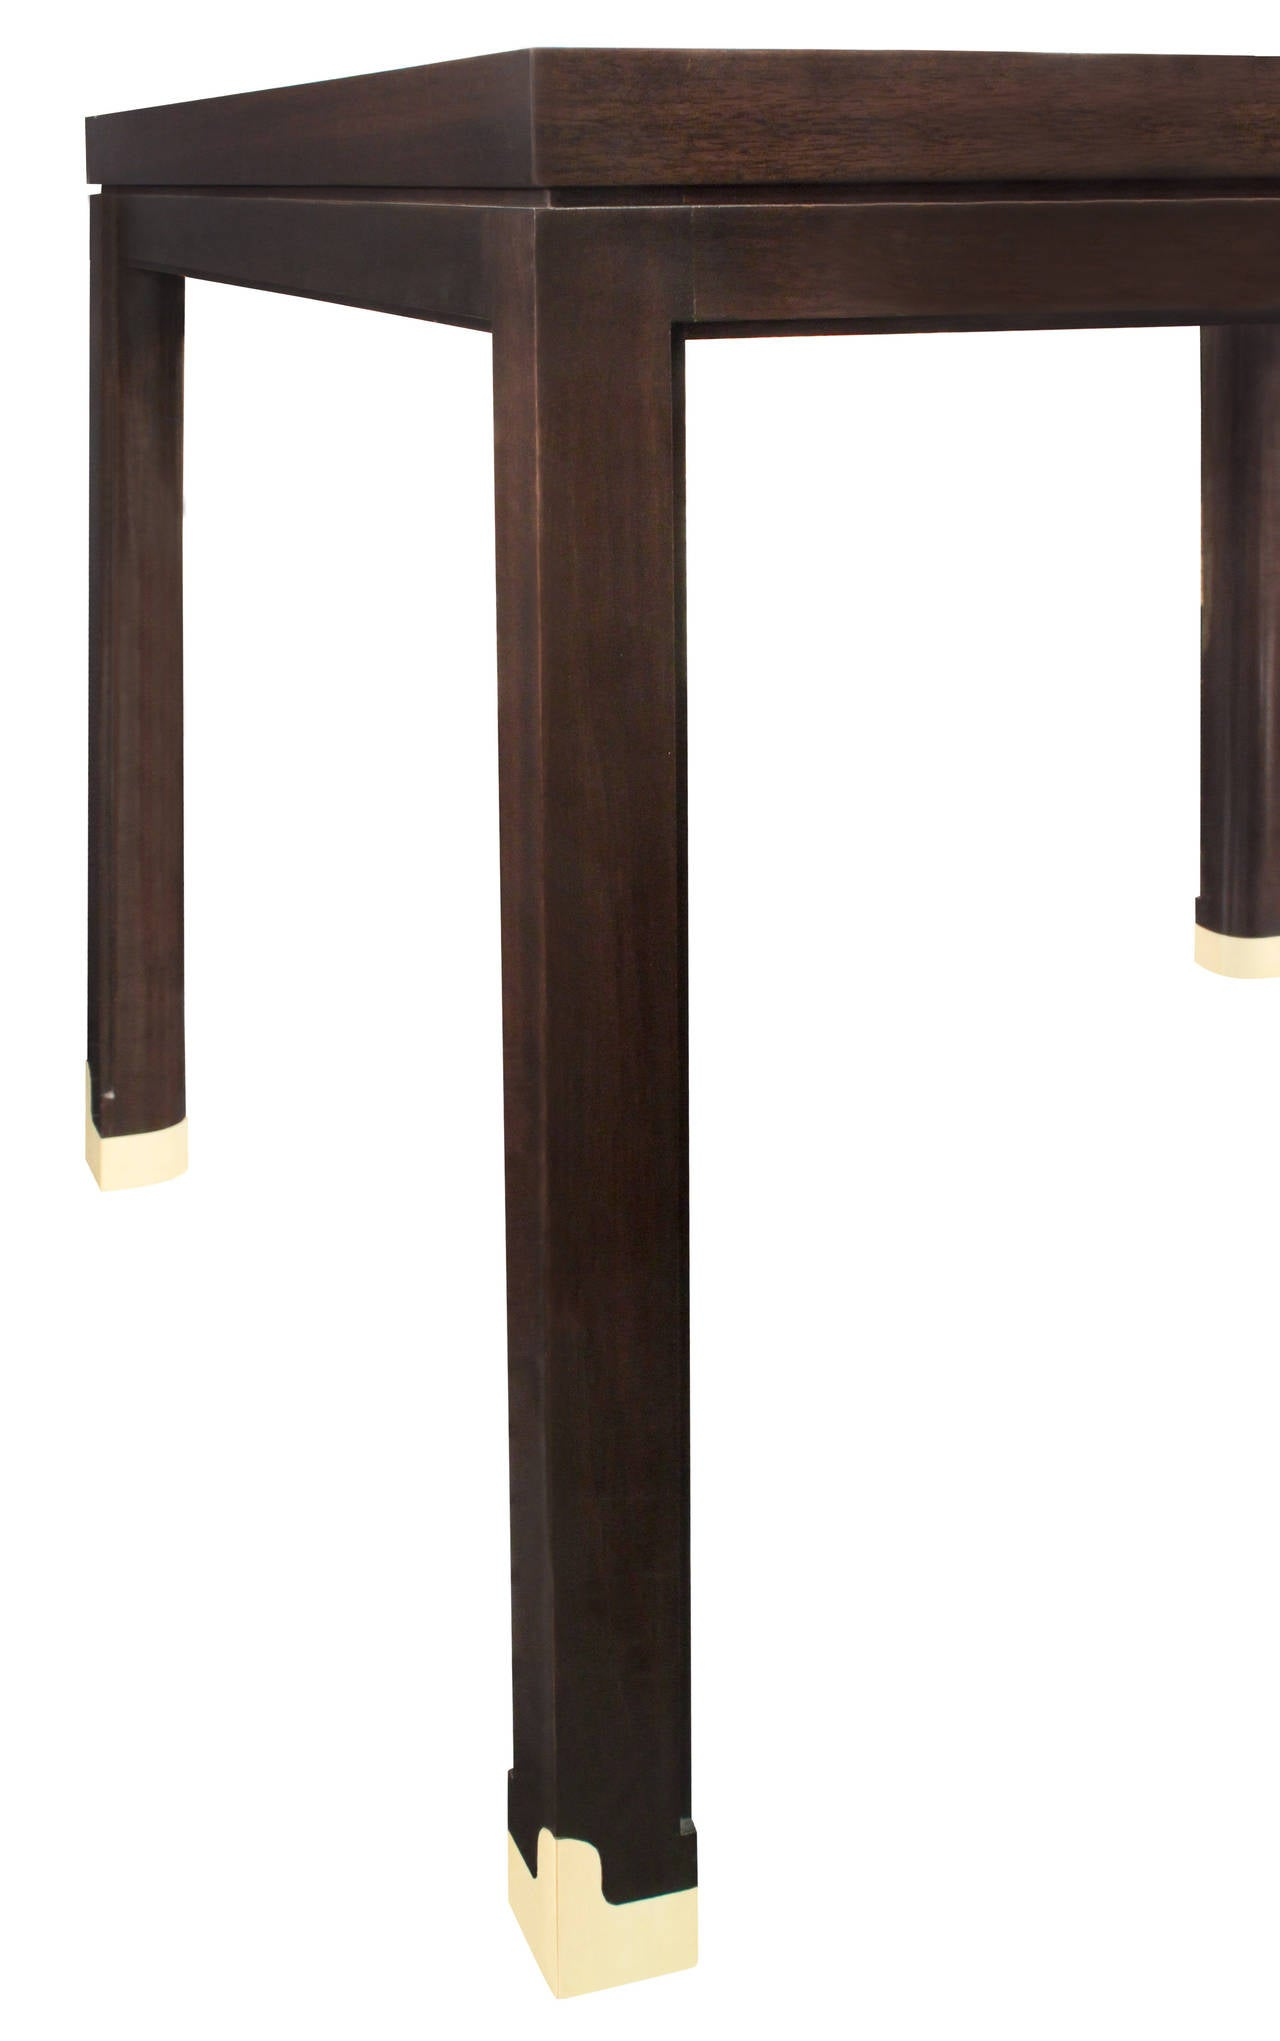 Hand-Crafted Elegant Side Table with Inlays by Tommi Parzinger For Sale